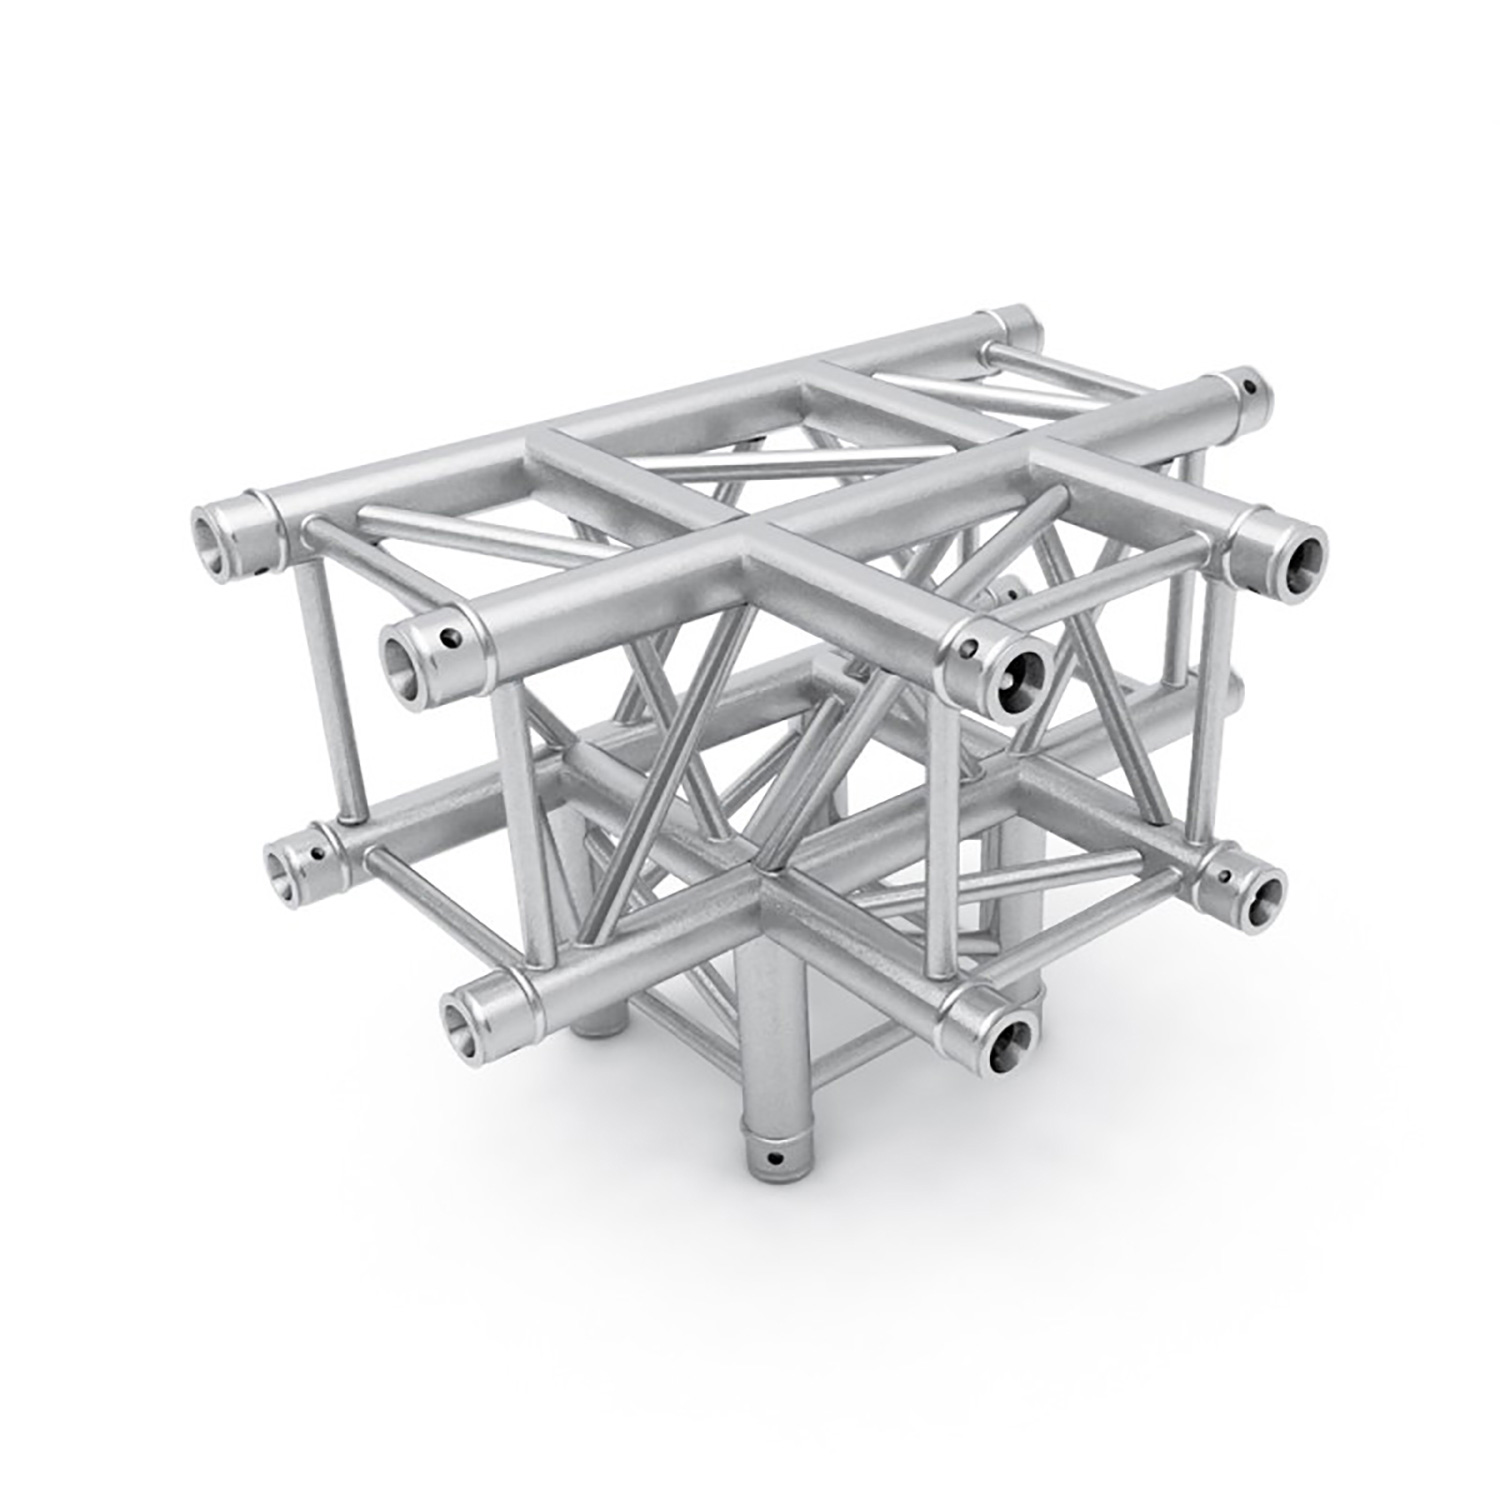 Quad Truss 3 Way Support Section